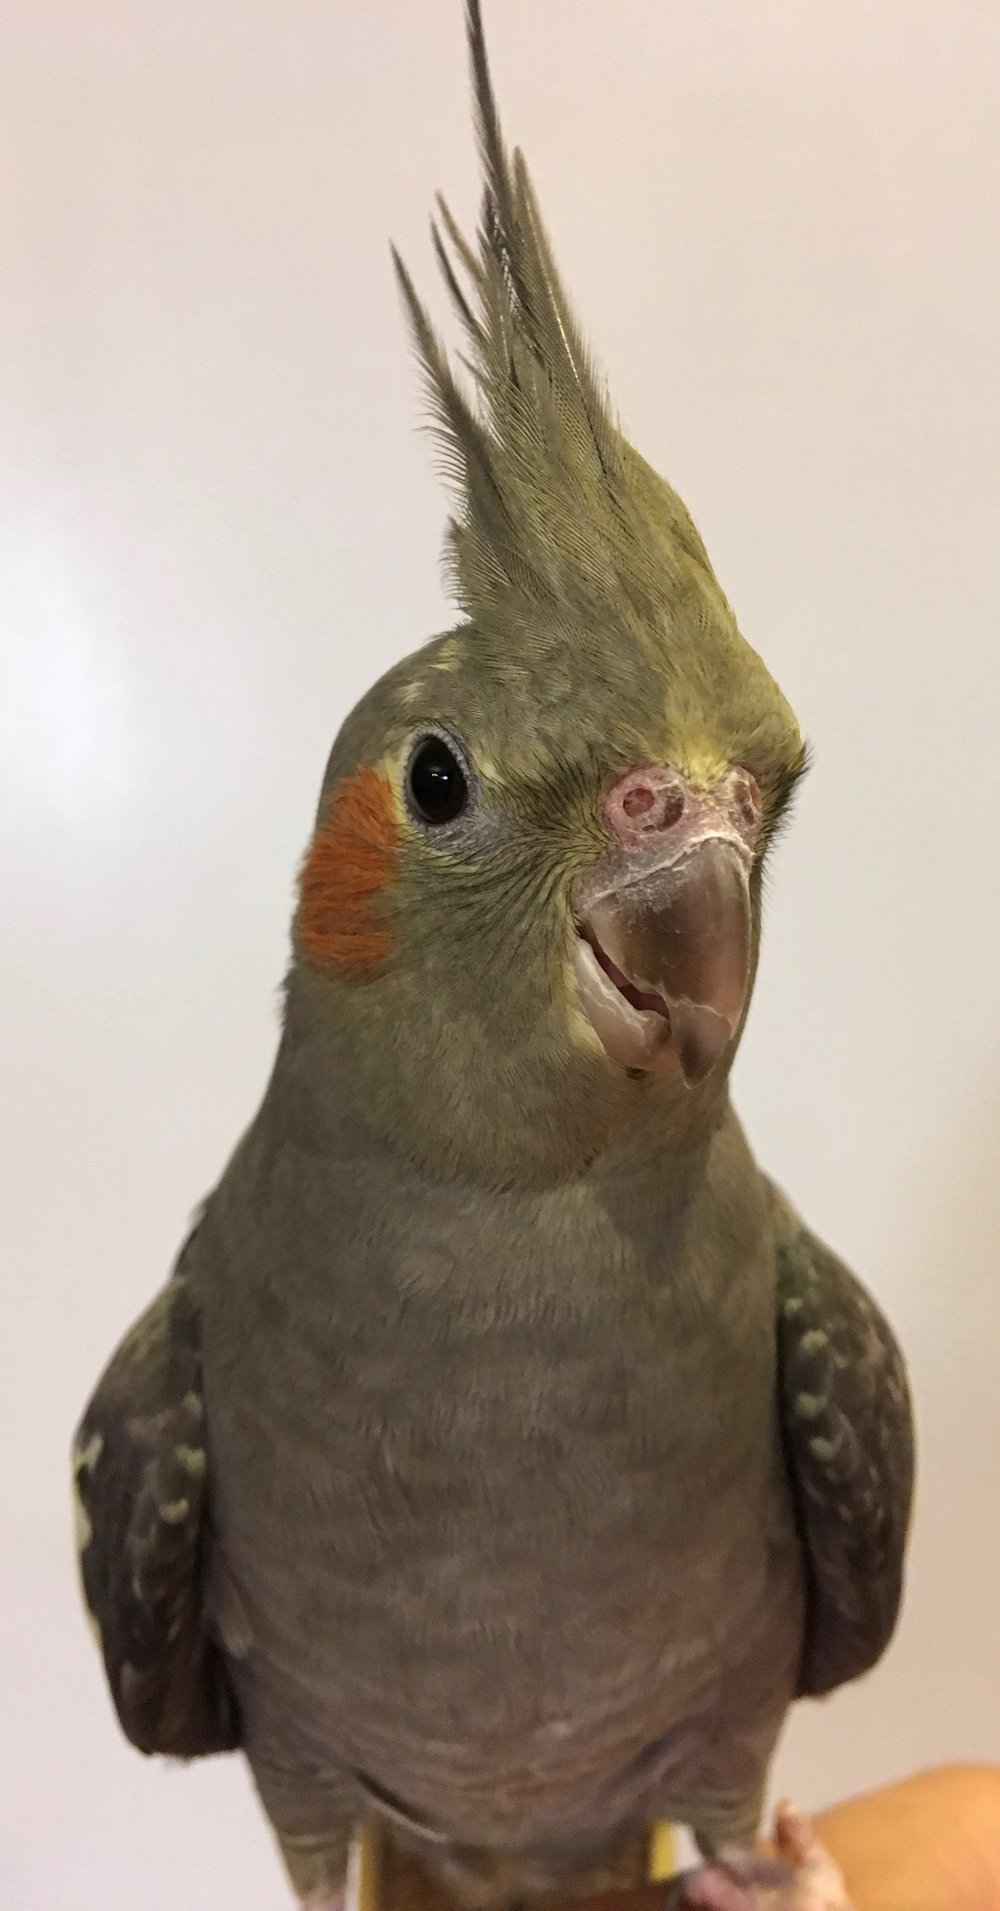 ADOPTION PENDING - Chicklet is a 2 year old female cockatiel. While initially shy, she is a sweet girl who will hang out with you for a little while. With more time and attention, she will be a great girl! Cockatiels live for 20+ years and are native to Australia.